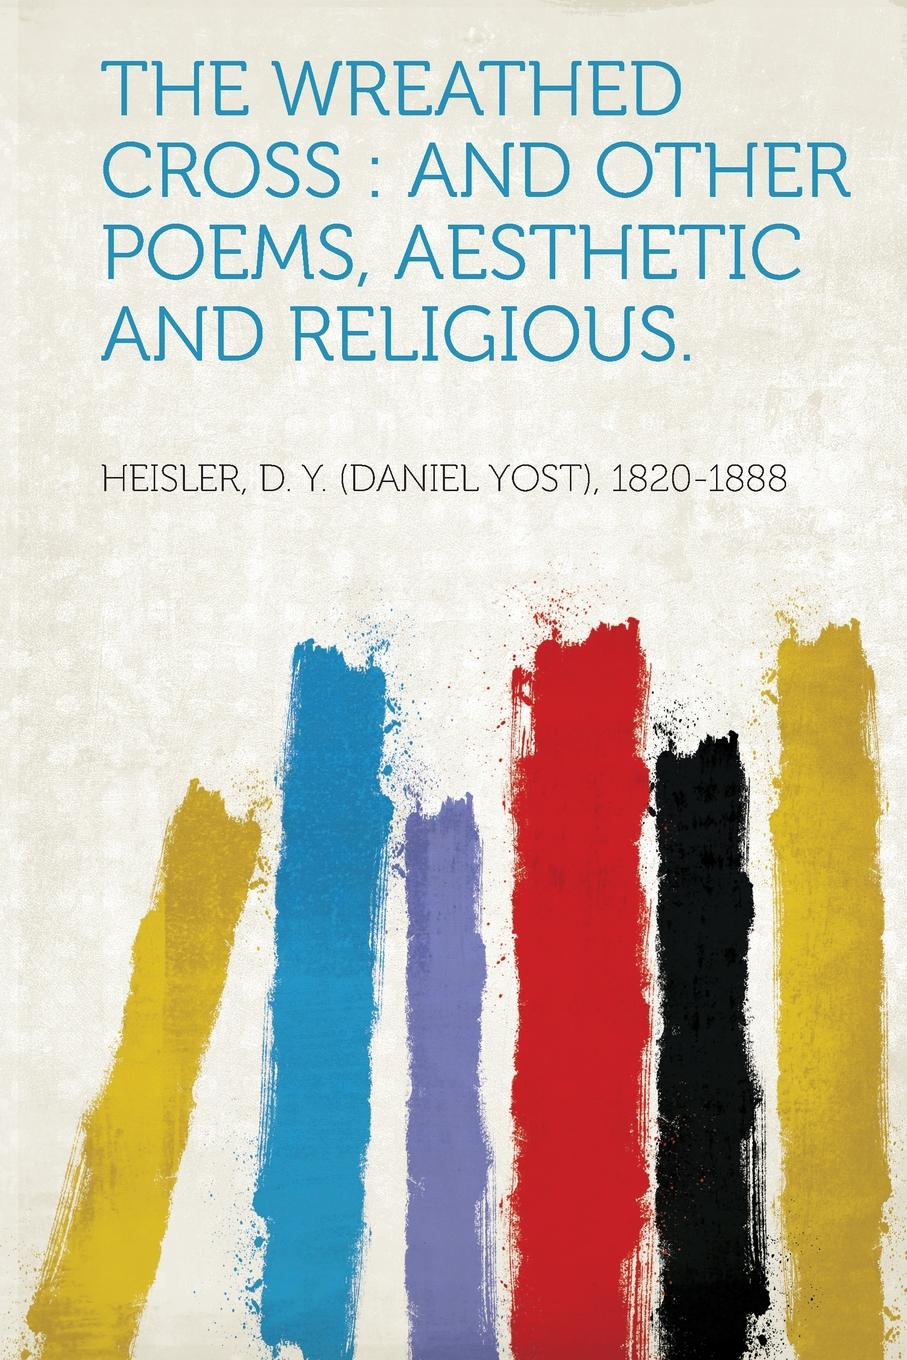 Heisler D. Y. (Daniel Yost) 1820-1888 The Wreathed Cross. and Other Poems, Aesthetic and Religious. wreathed